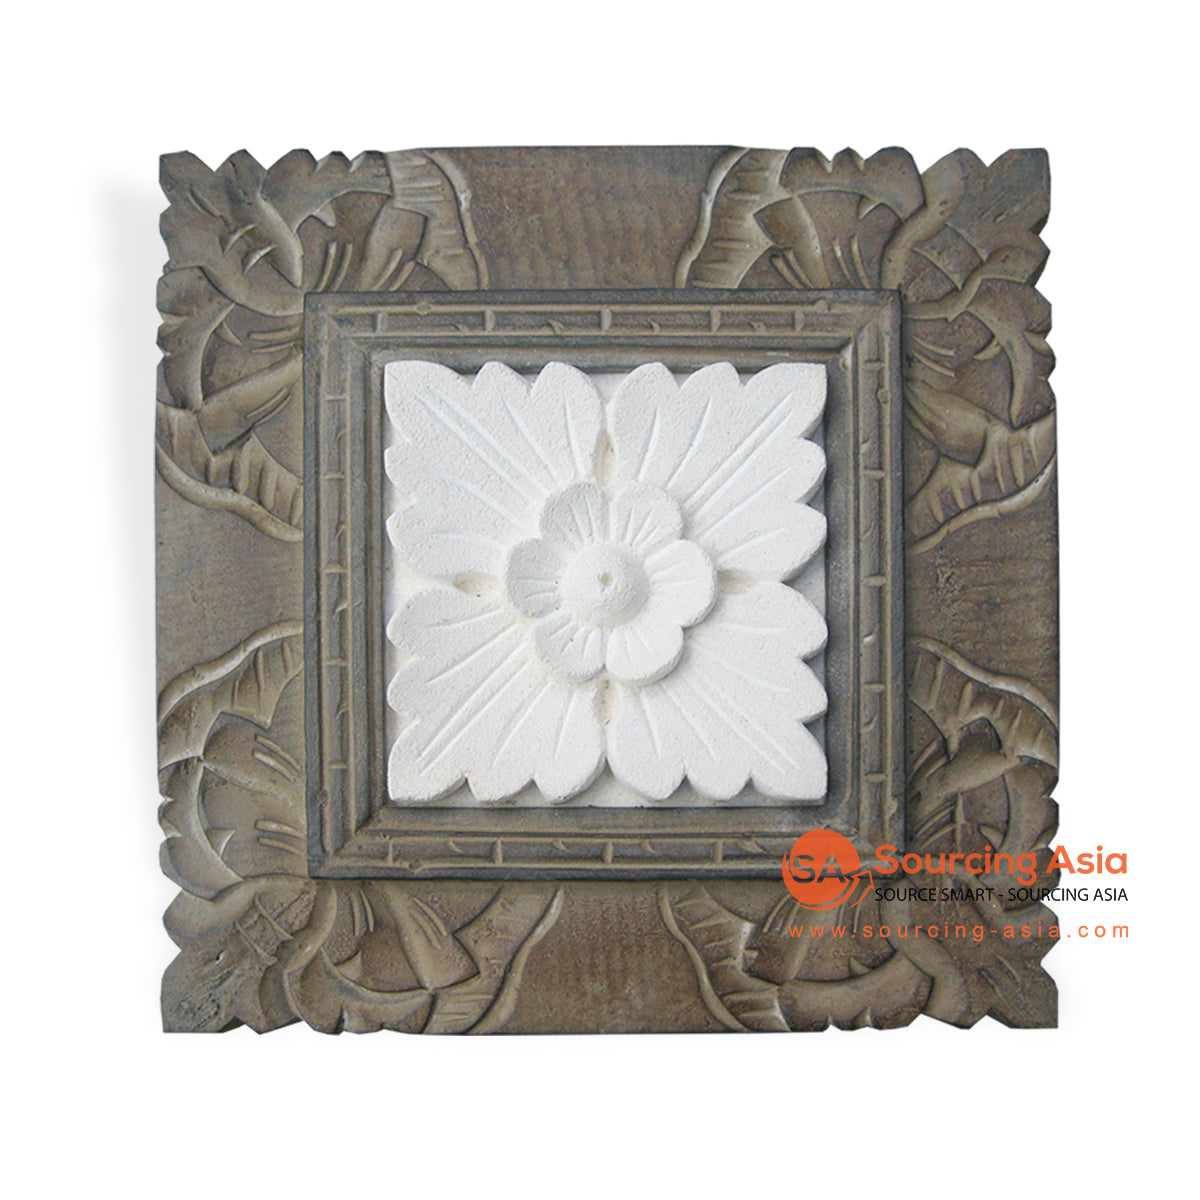 MHB027-4AG WOODEN WALL DECORATION